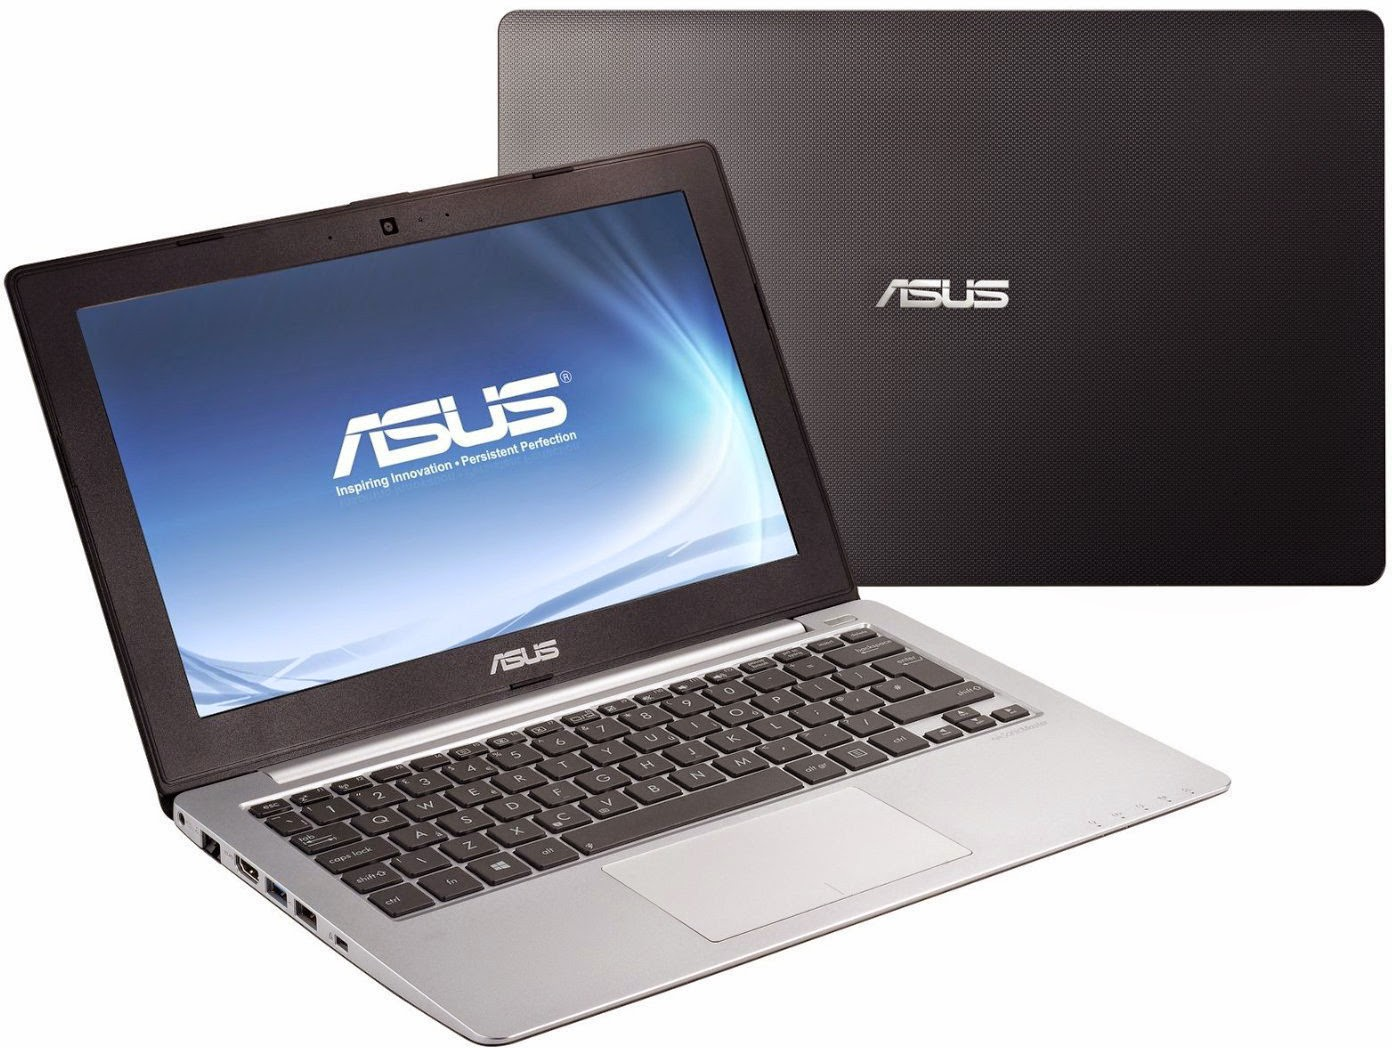 Asus F201 Driver Download, Asus F201E Driver Download